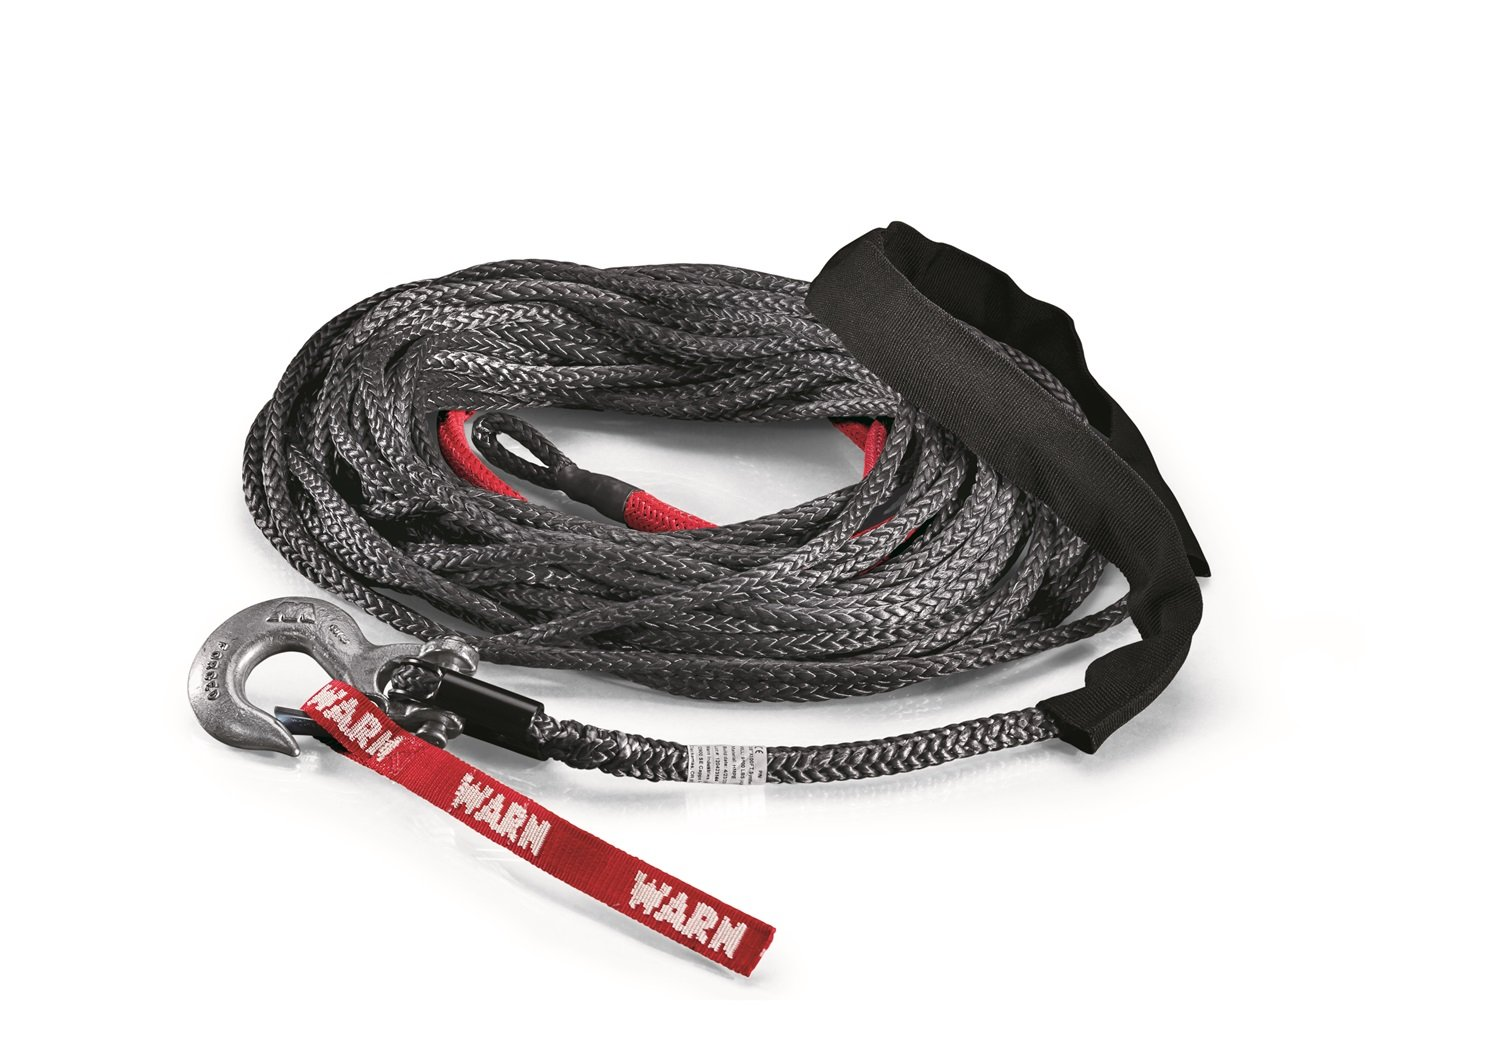 Warn 87915 Spydura Synthetic Winch Rope Kit Automotive Need A Wiring Schematic On M8000